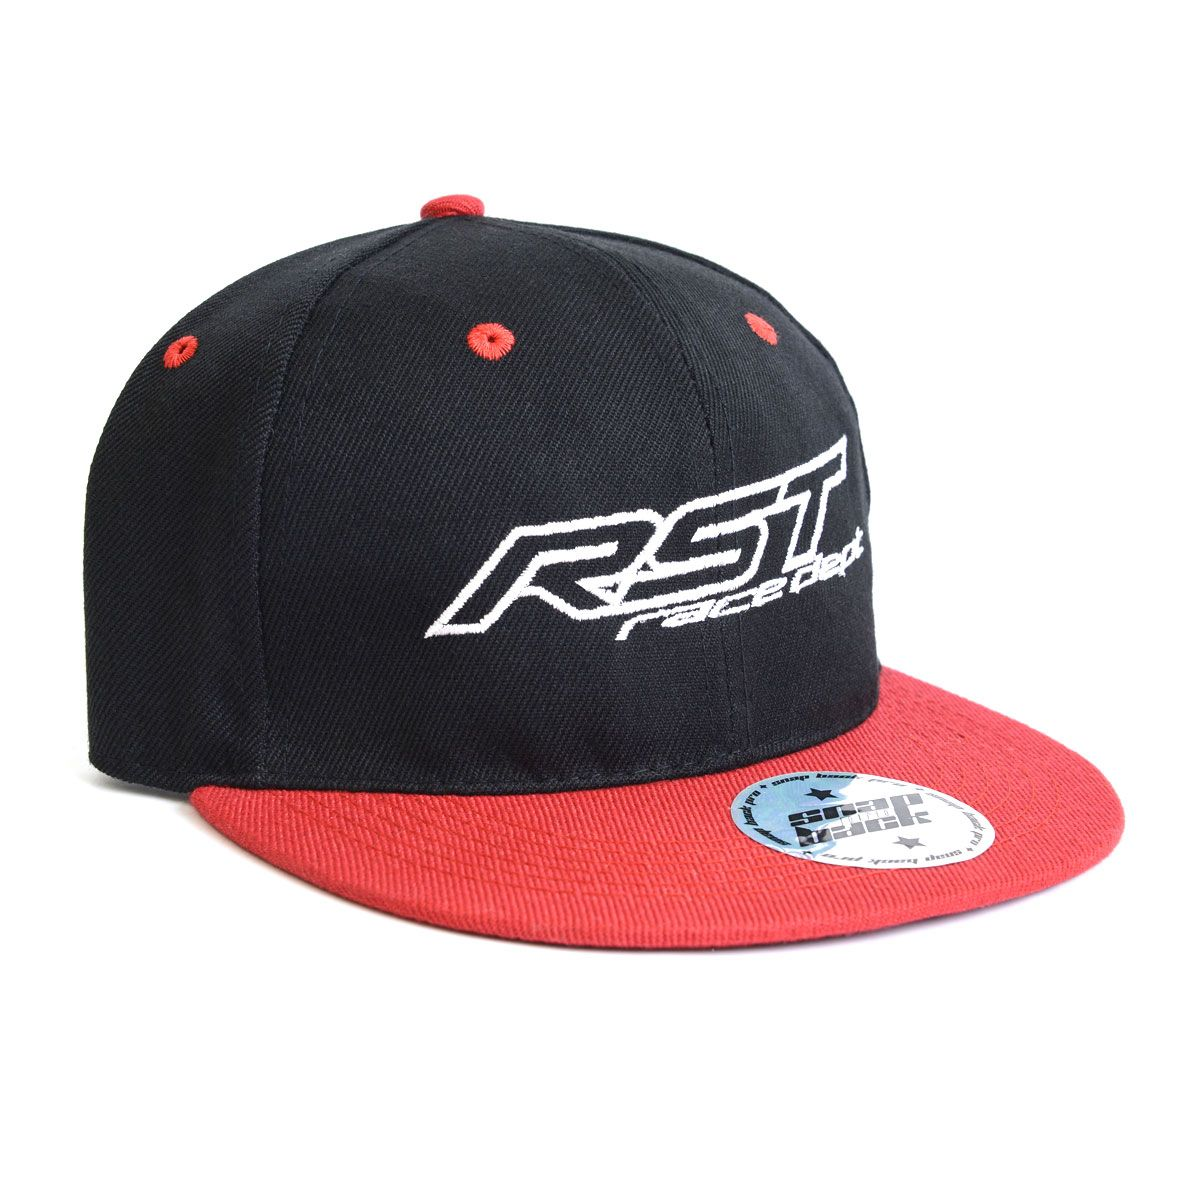 RST Casual Track Snapback Cap Black / Red